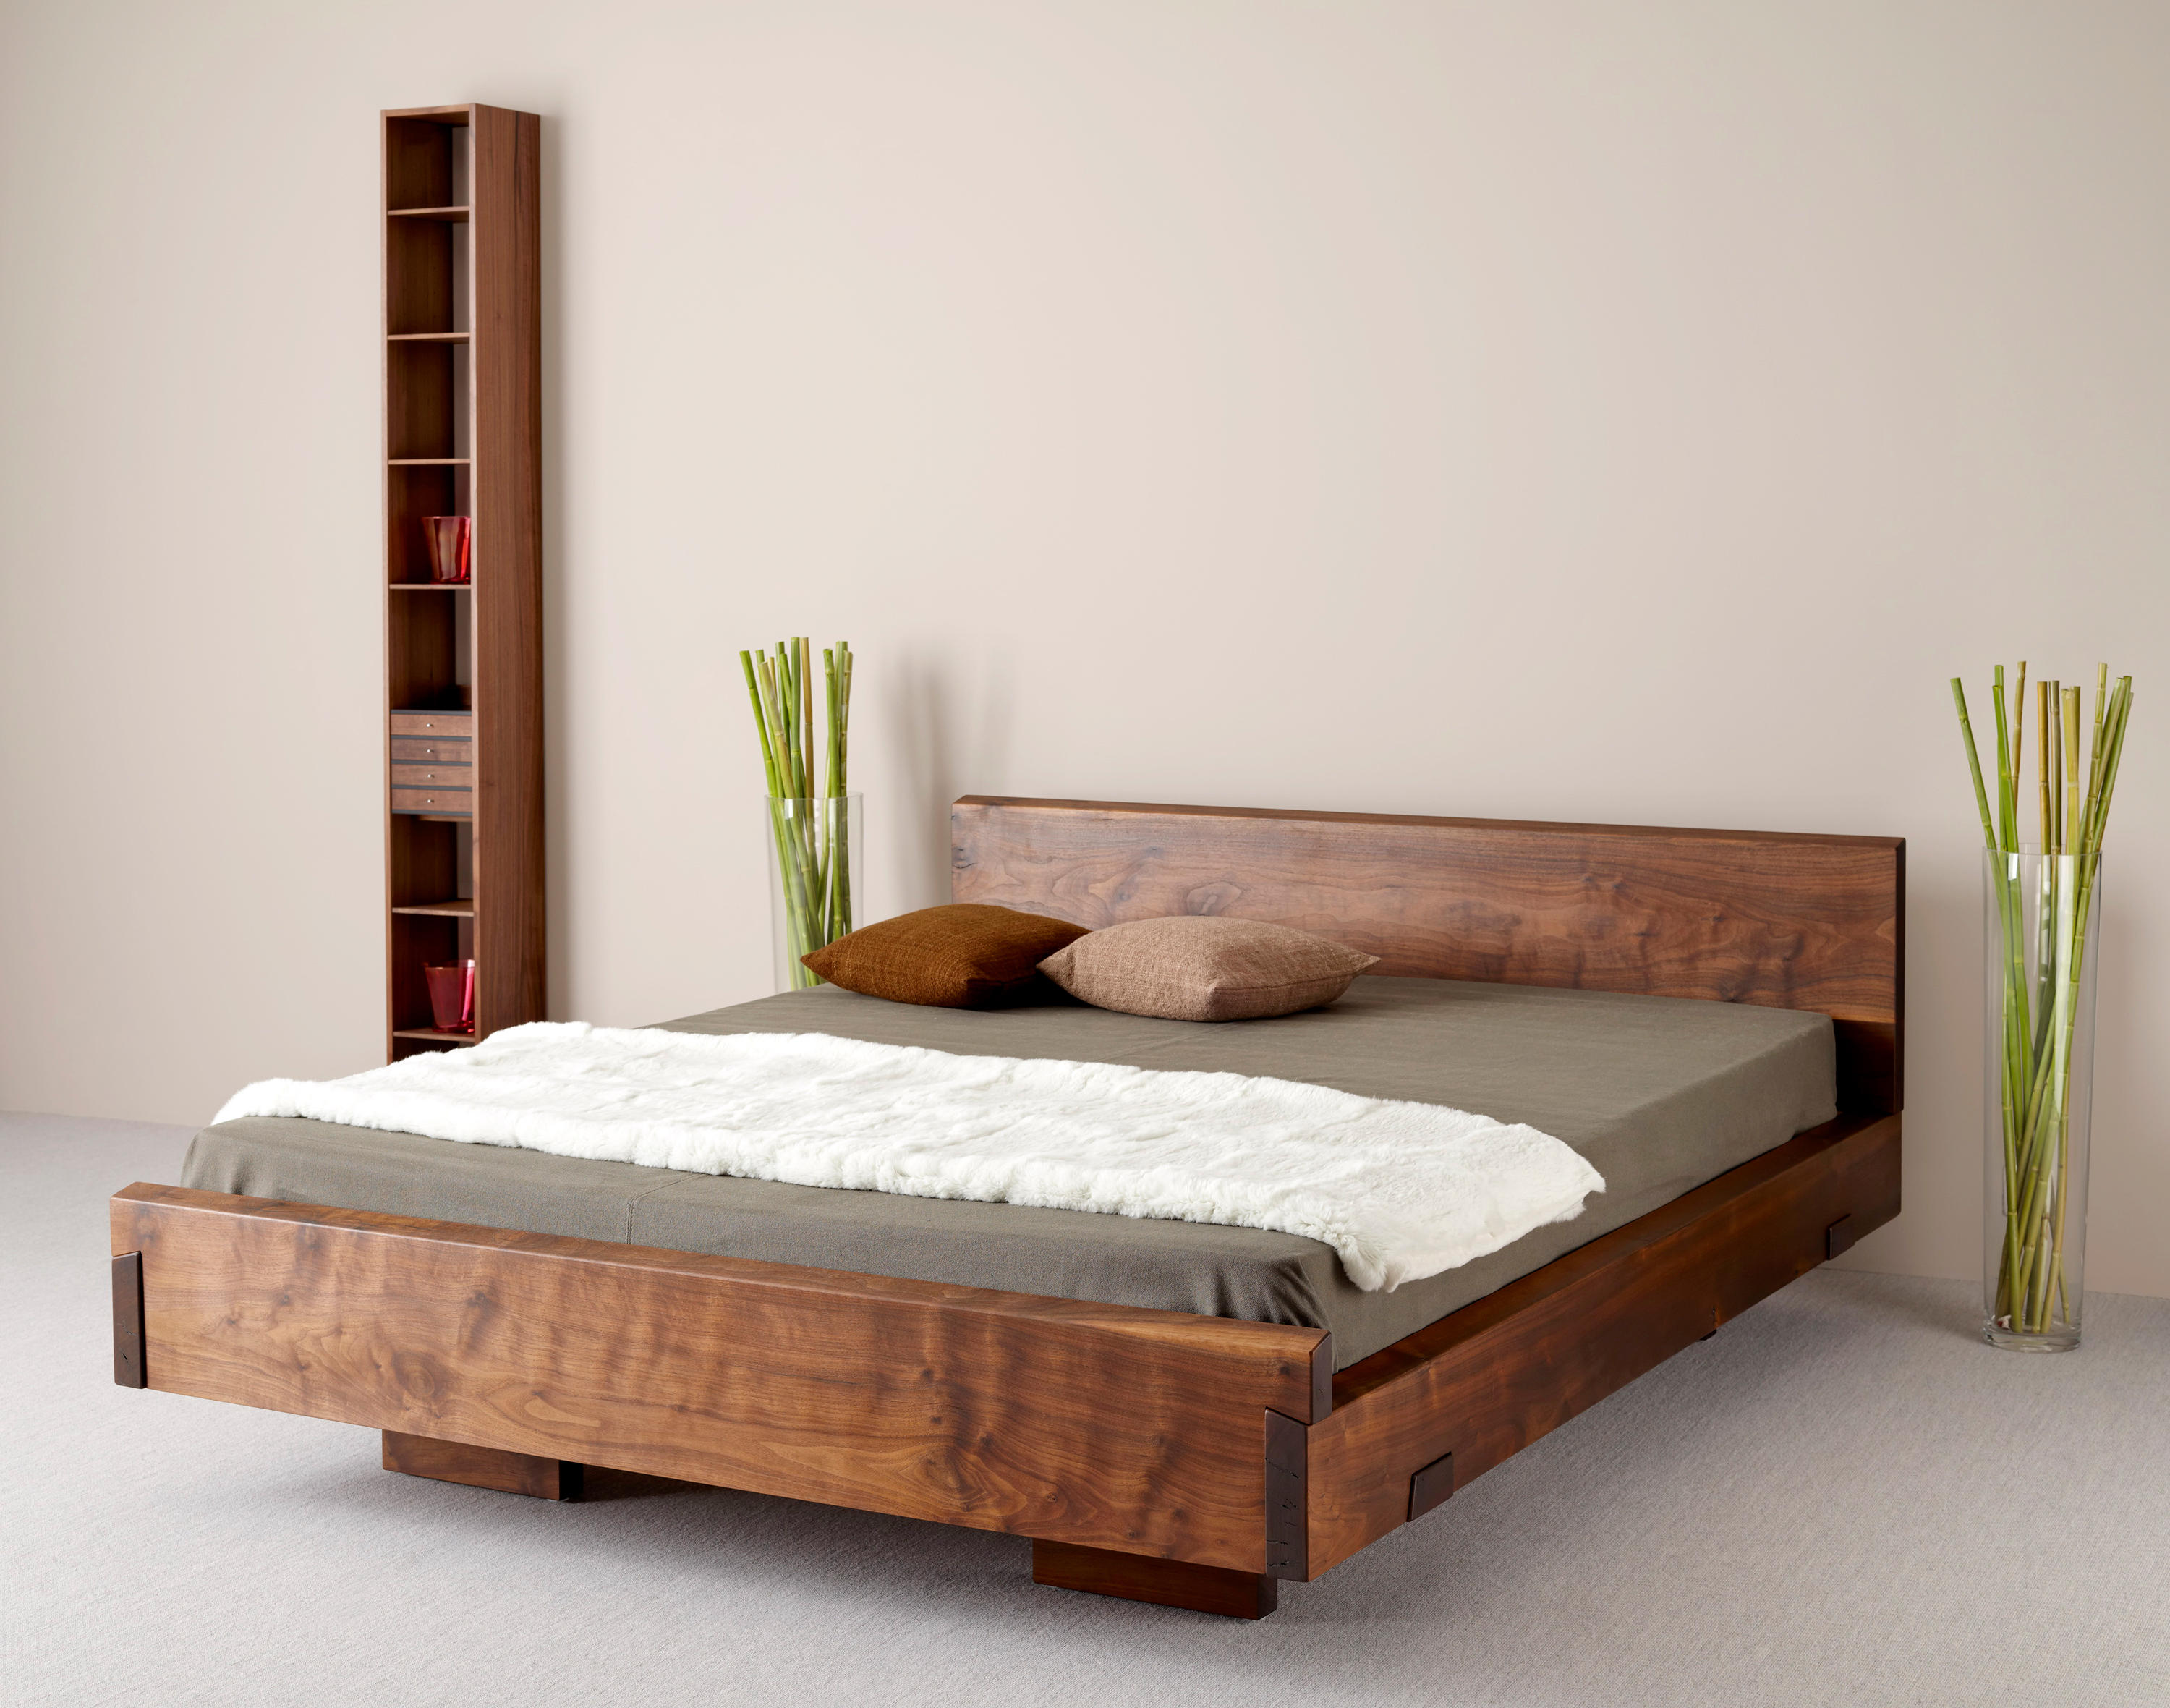 Ign Timber Night Double Beds From Ign Design